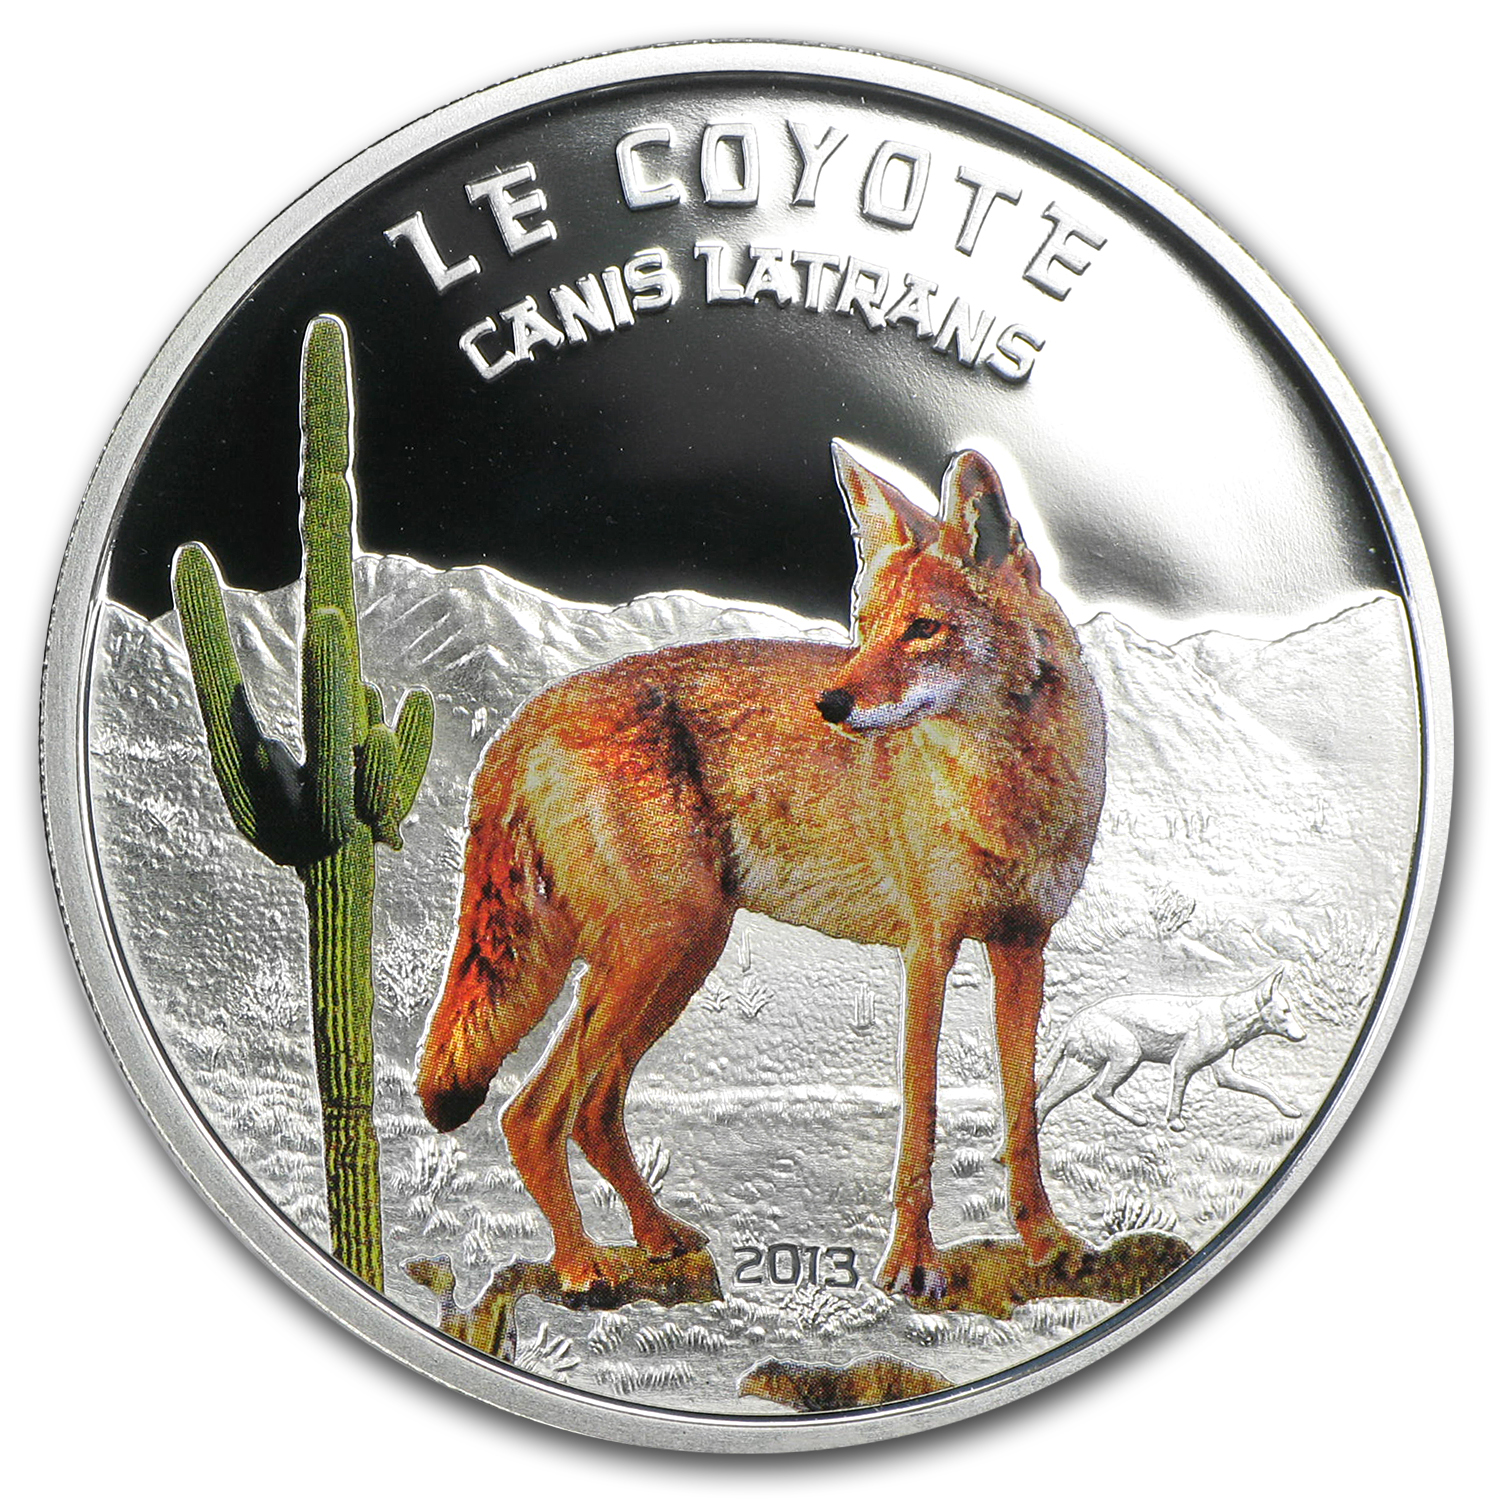 2013 Niger Silver Predator Hunters Canis Latrans Coyote Proof